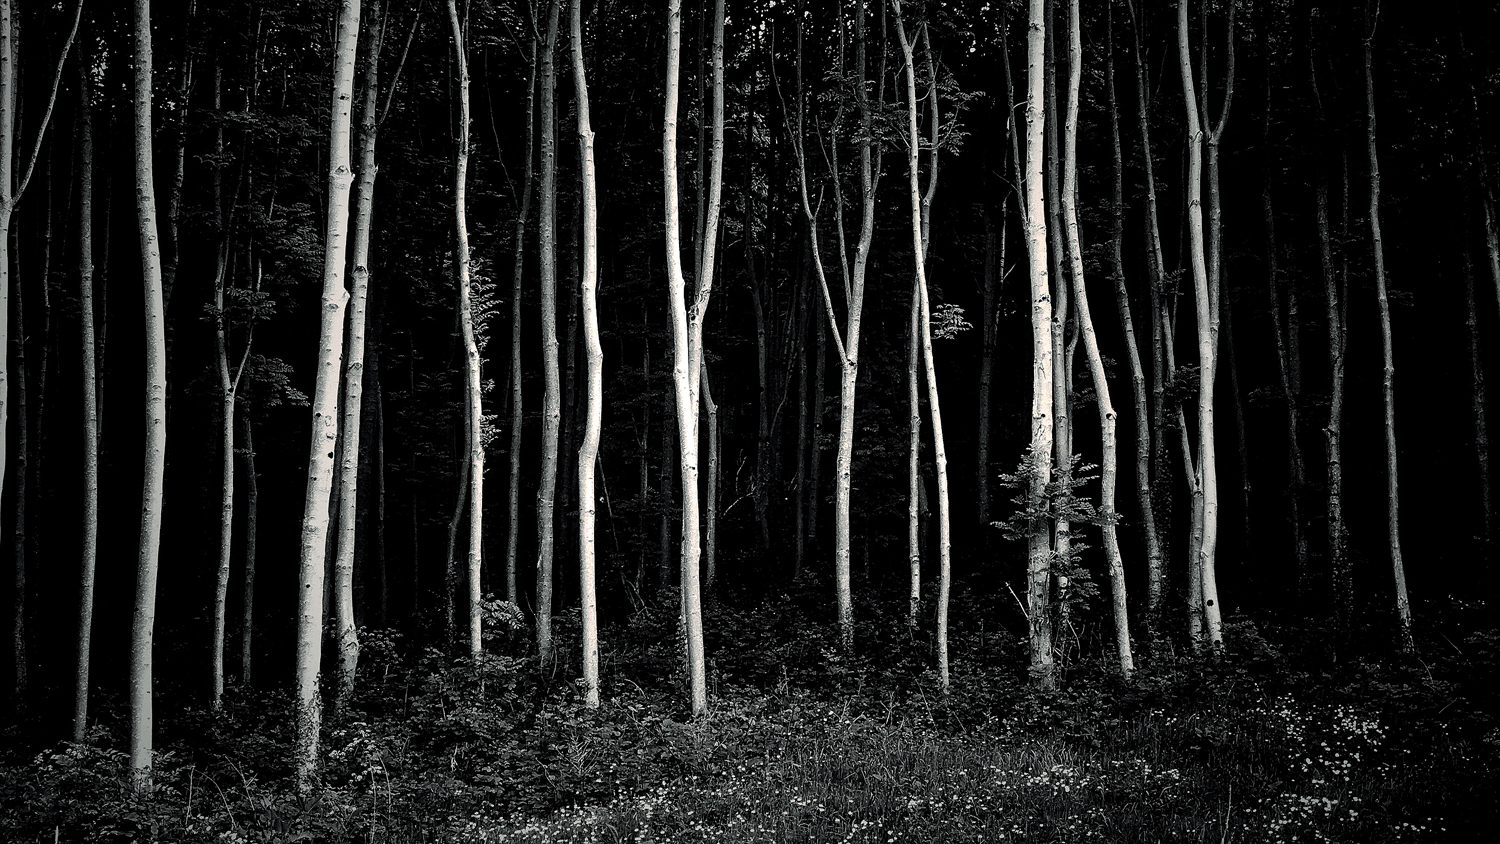 Trees in Monochrome